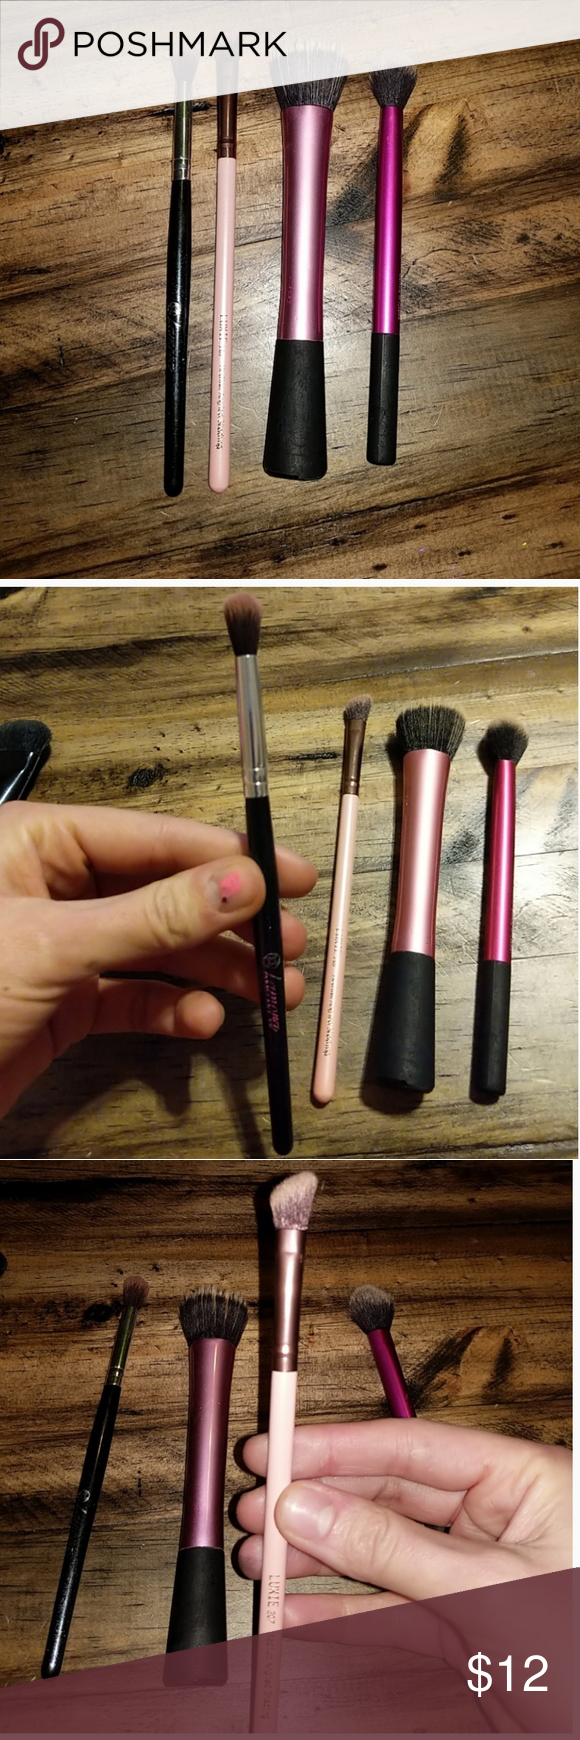 Makeup brushes bundle Real techniques stippling brush and